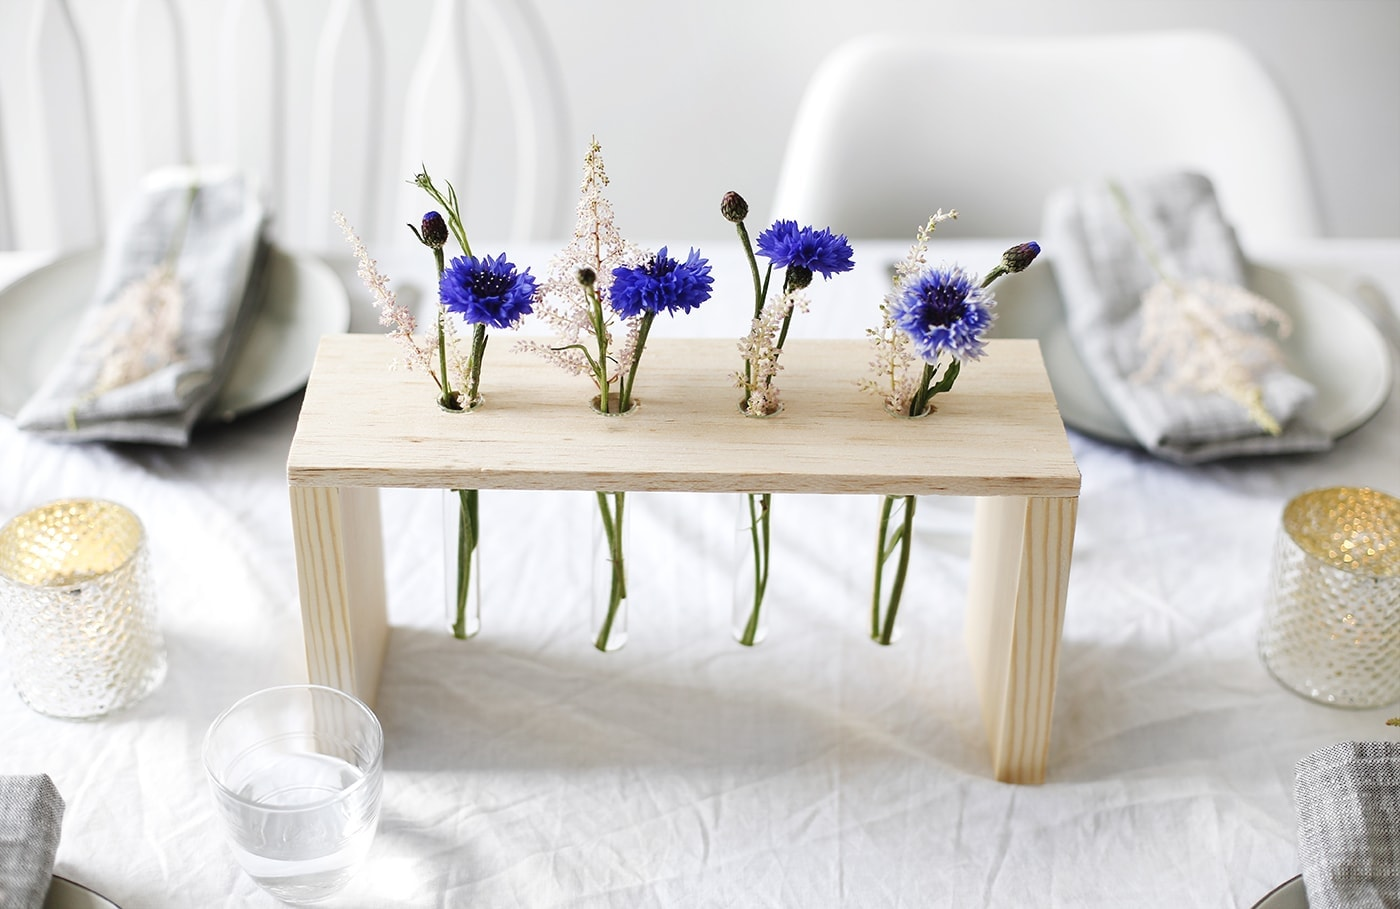 DIY floral table centre made with wood and test tubes | easy craft tutorial perfect for entertaining | home ideas